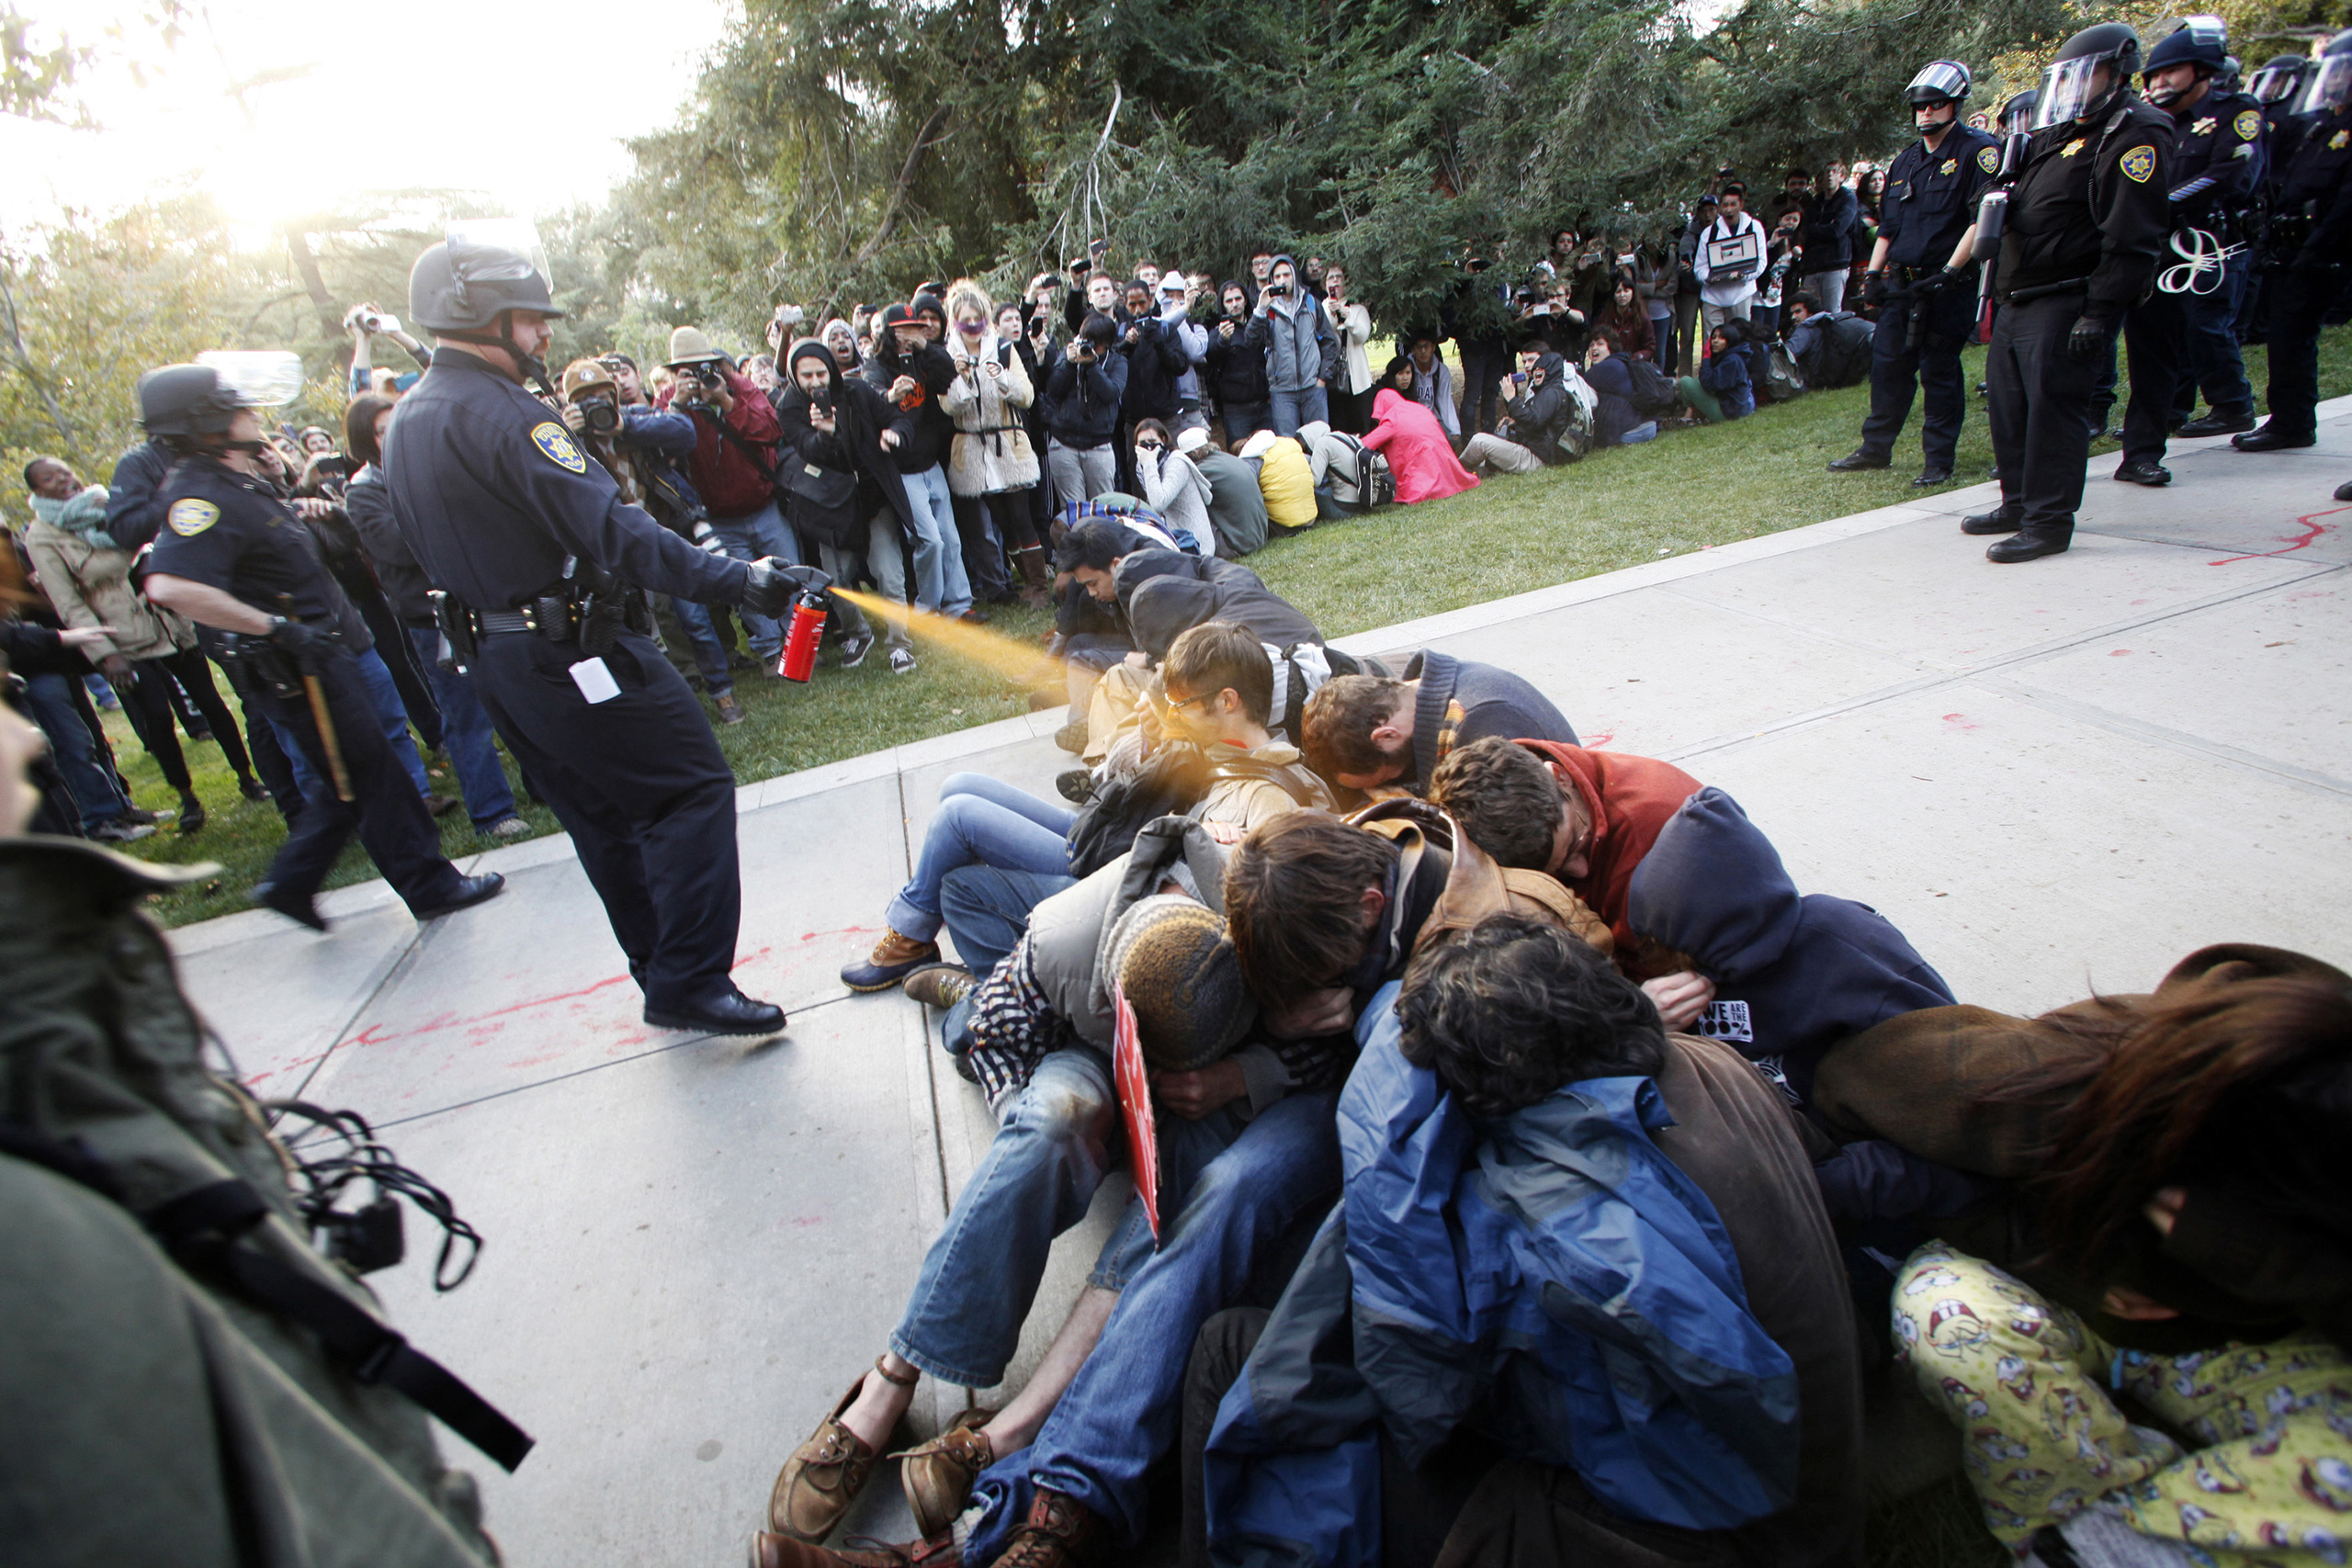 In this Nov. 18, 2011, file photo, University of California, Davis Police Lt. John Pike uses pepper spray to move Occupy UC Davis protesters while blocking their exit from the school's quad in Davis, Calif. The school reportedly paid image consultants at least $175,000 to try to clean up the online image of the university after the incident.